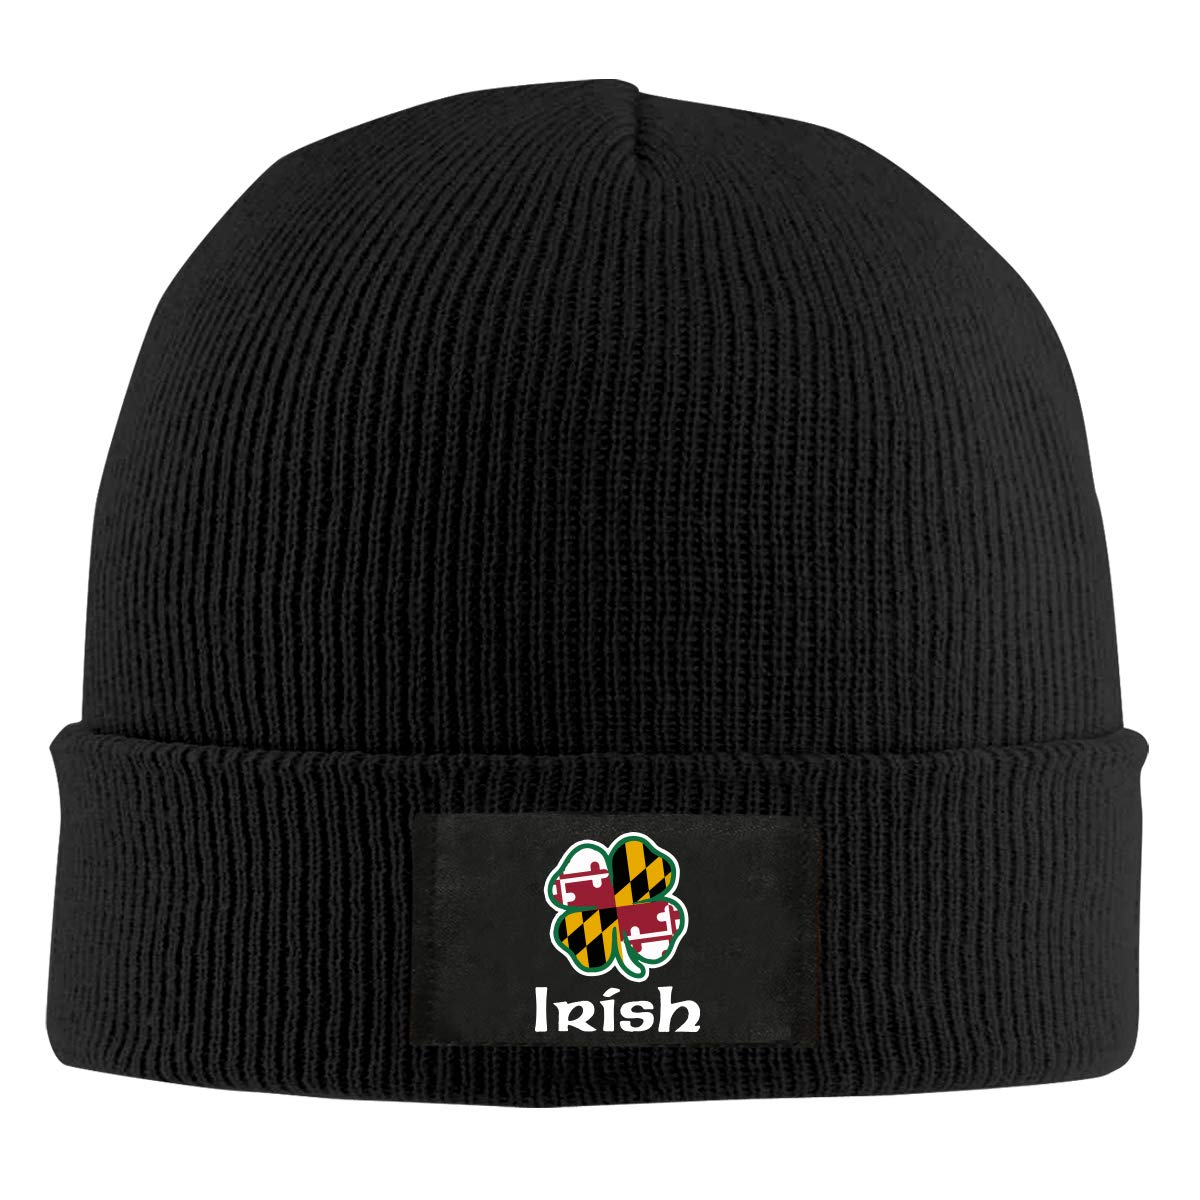 100/% Acrylic Thick Beanies Cap BF5Y6z/&MA Mens and Womens Maryland Flag Shamrock Irish Knitted Hat